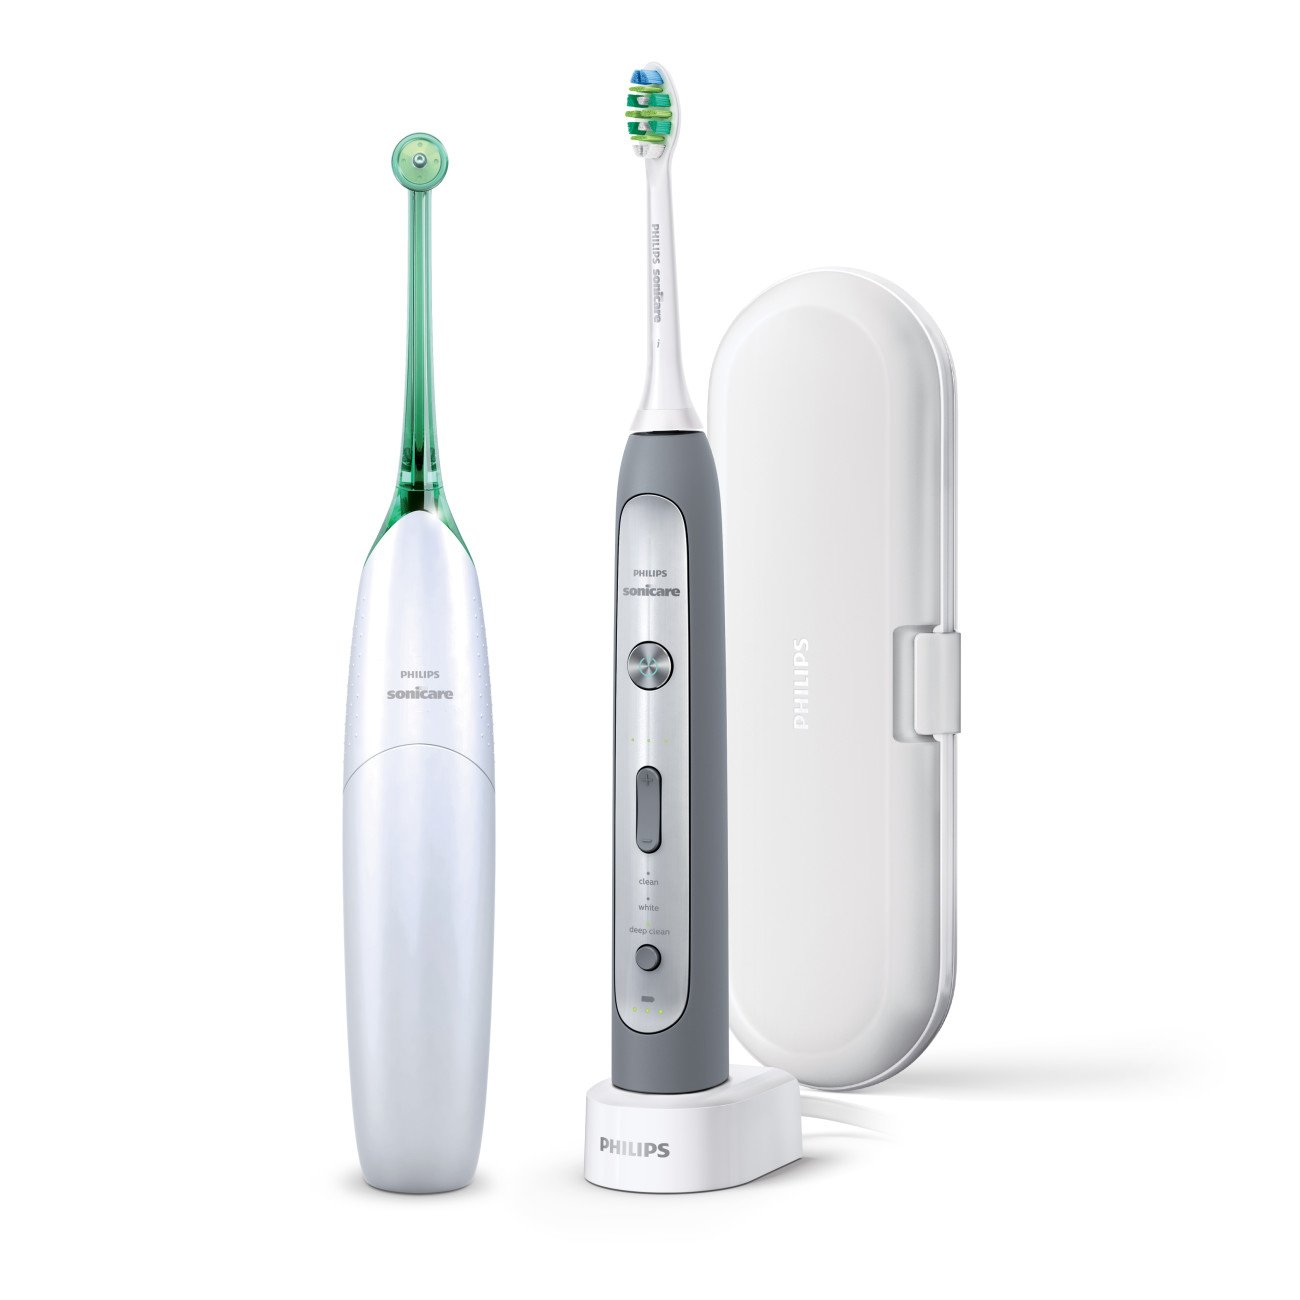 Philips Sonicare Flexcare Platinum Rechargeable Toothbrush and Philips Sonicare AirFloss Duo Pack by Philips Sonicare (Image #1)